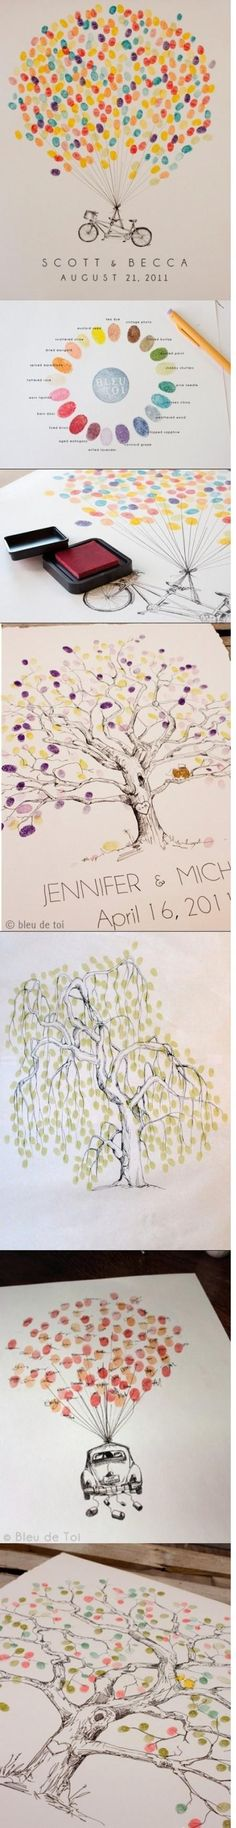 Fingerprint ideas. wedding guest books / family reunions. So cute!! via Jeannie Bowermeister